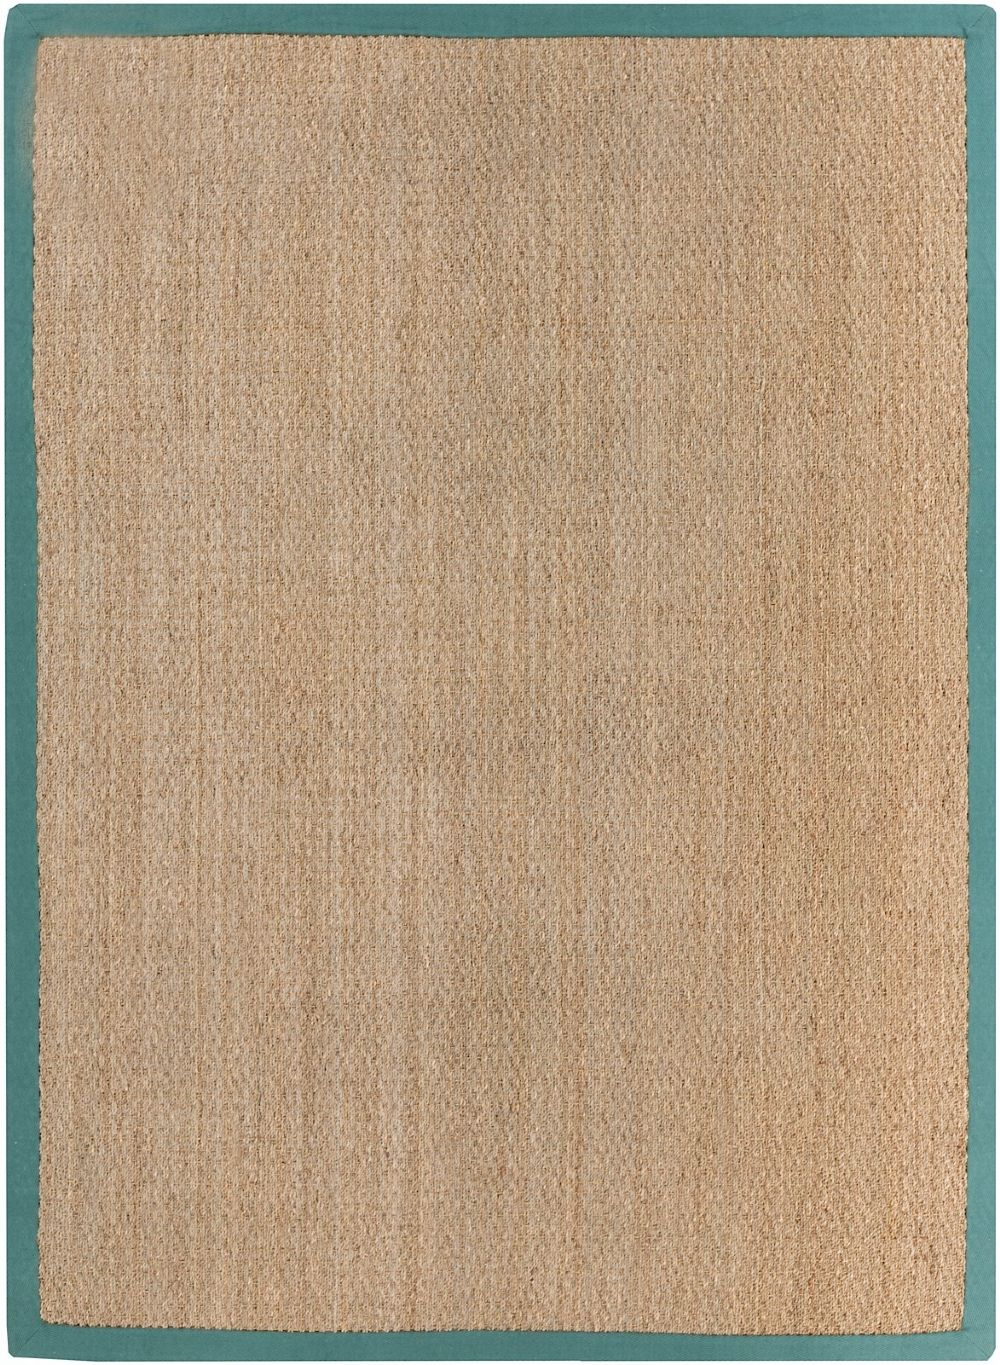 rugpal fawn natural fiber area rug collection